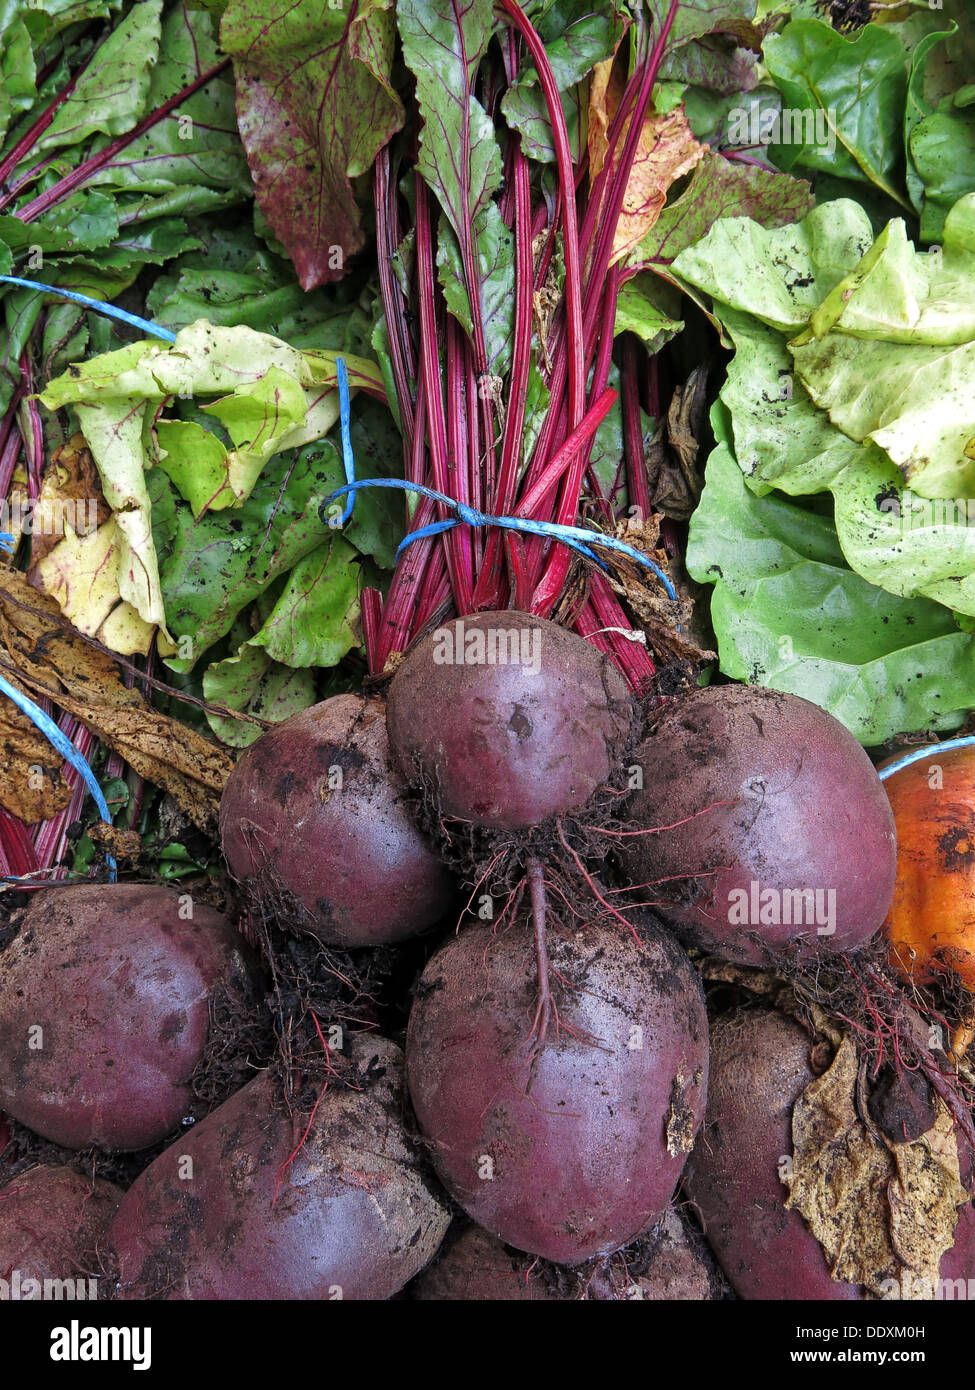 Organic red Beetroot on sale at a farmers market with stalk, Warrington - Stock Image